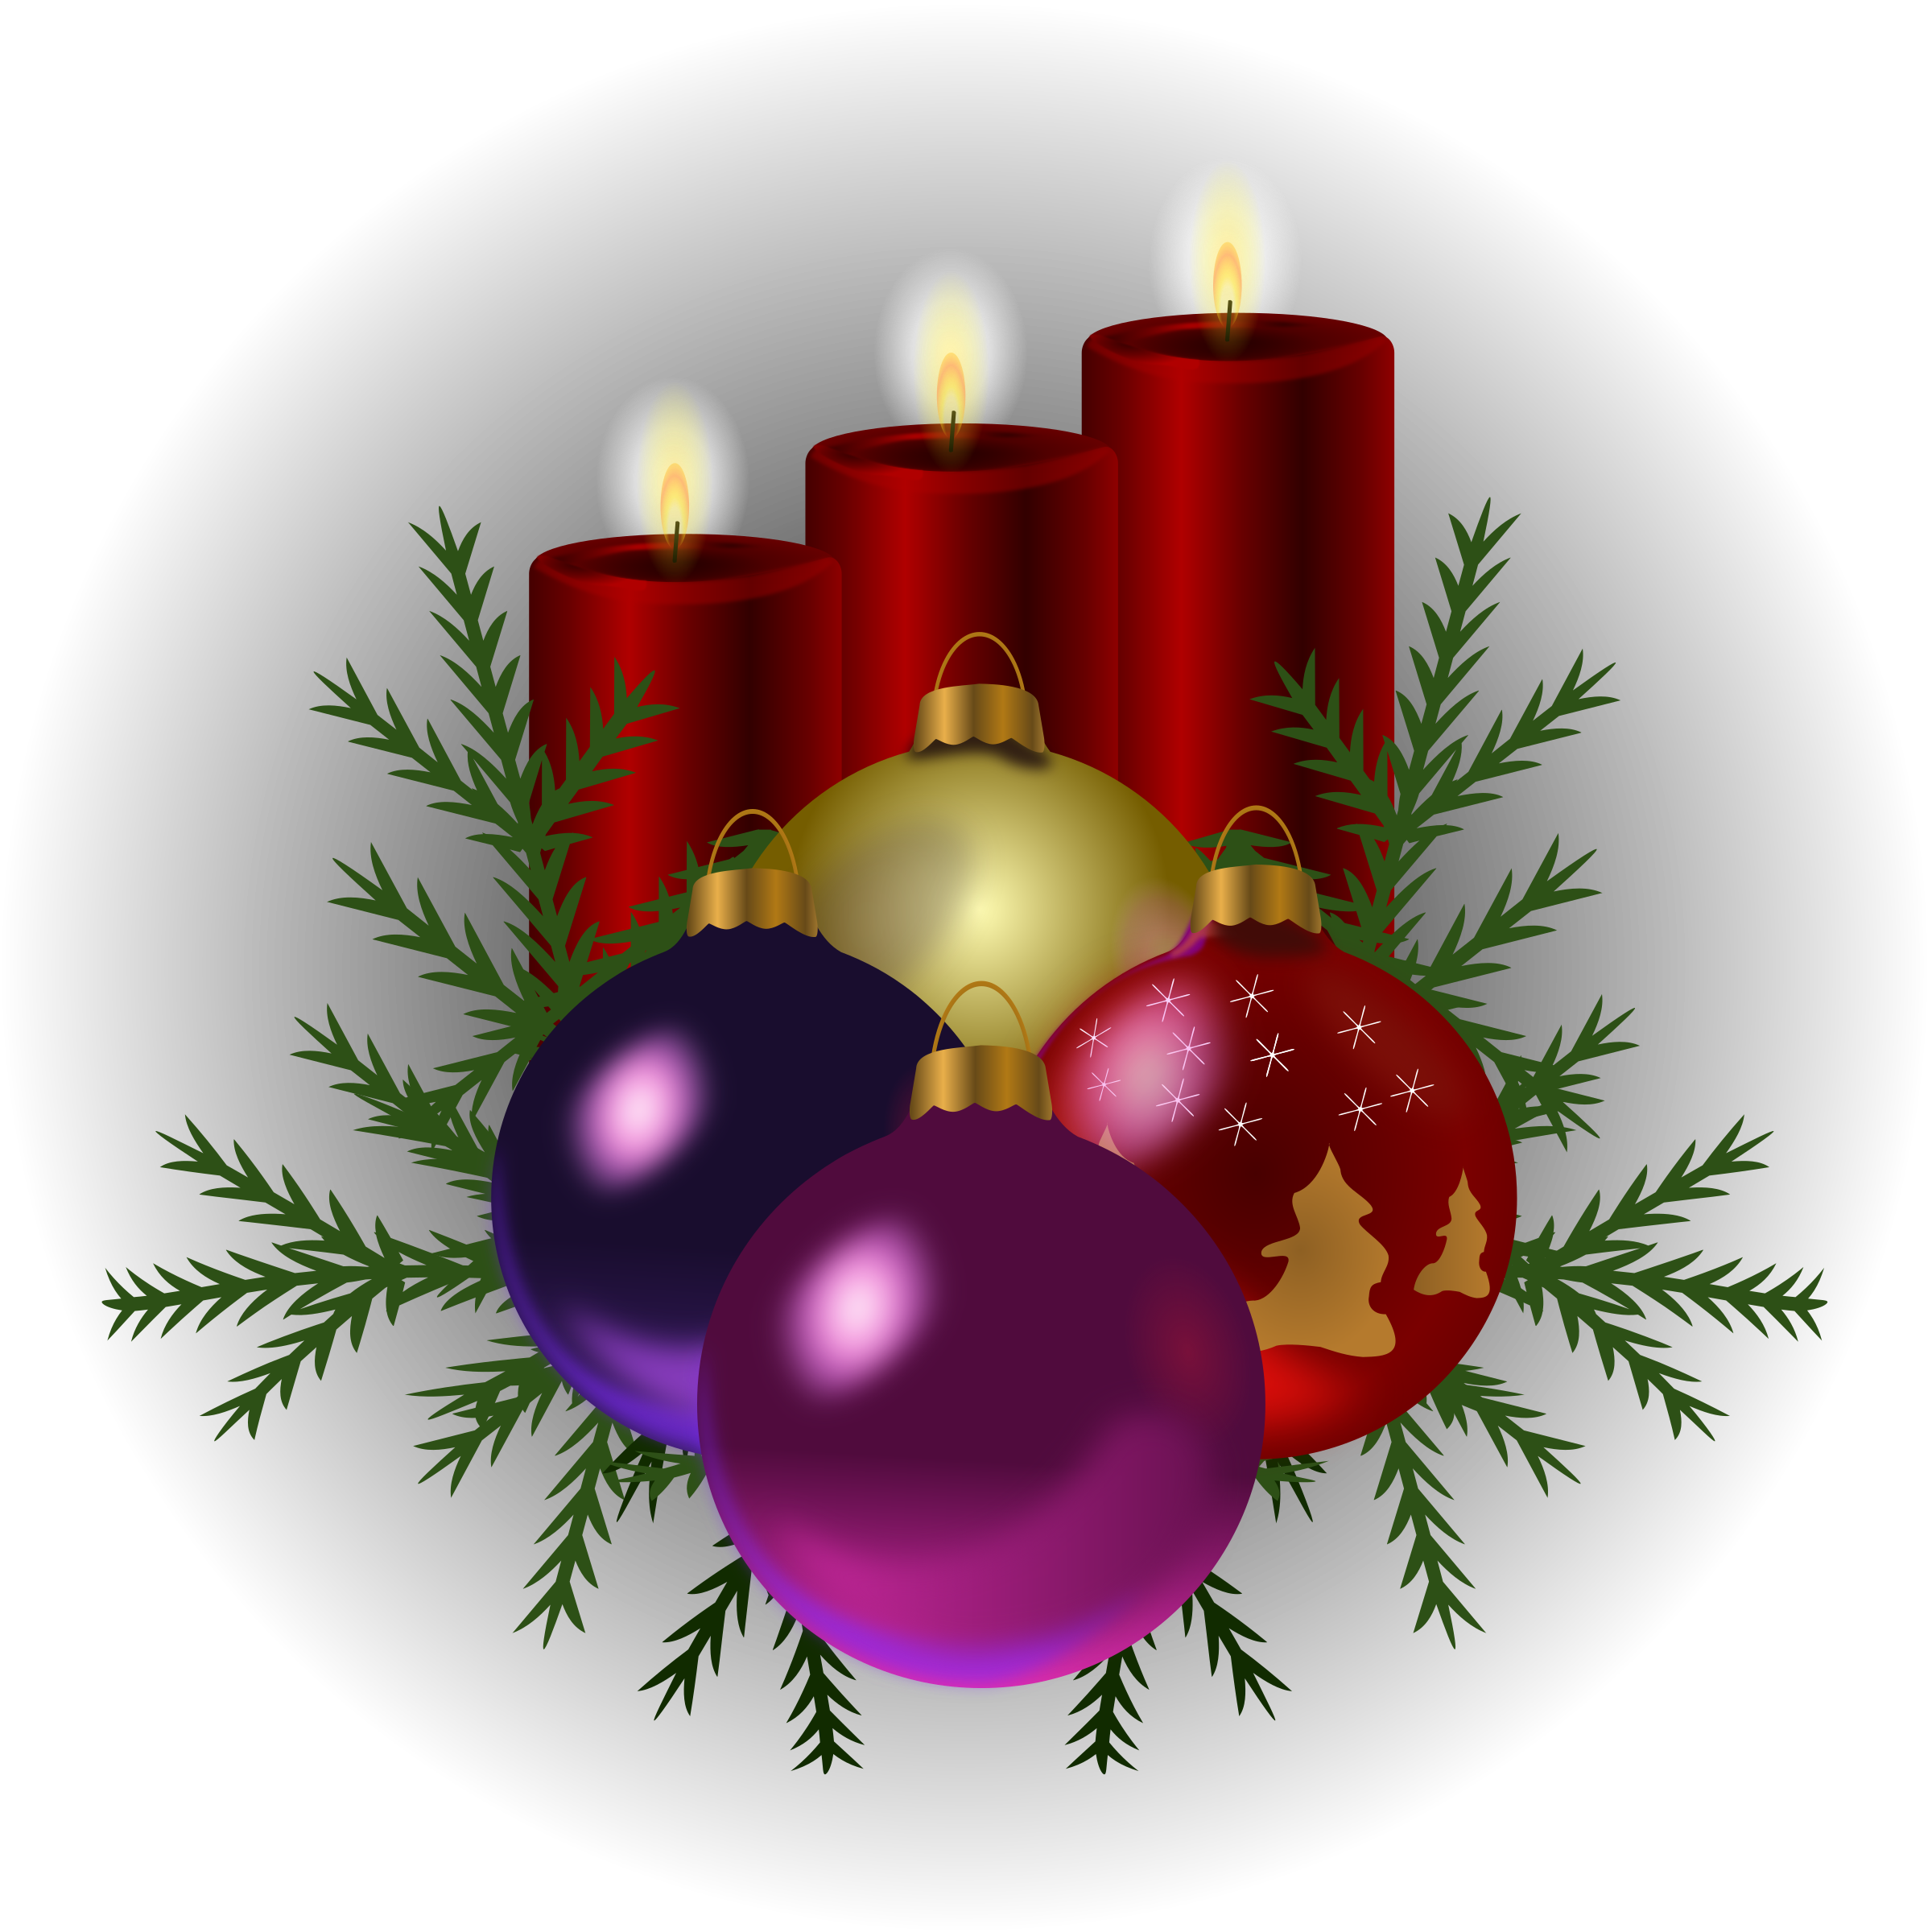 Christmas tree candles clipart #8